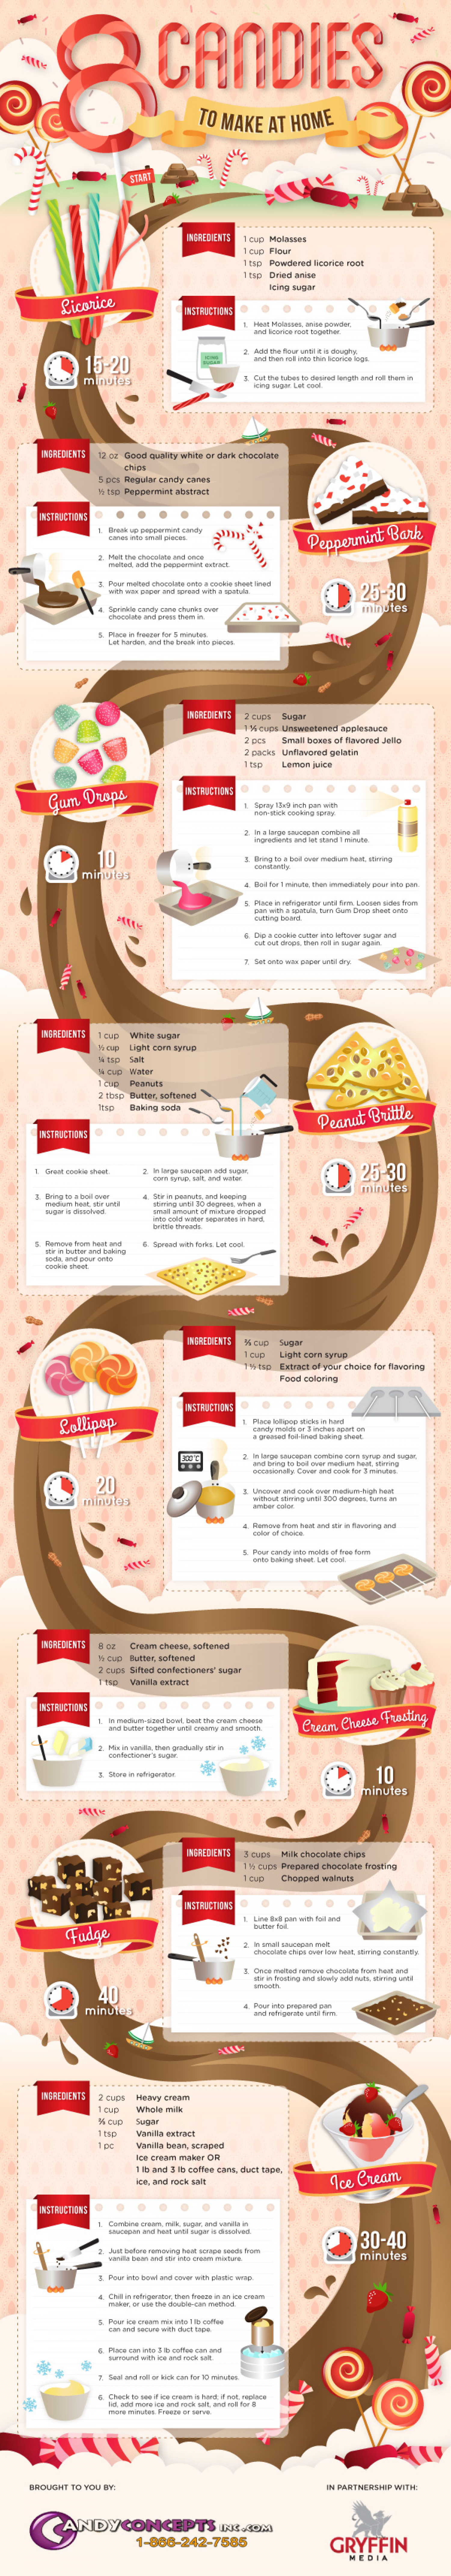 8 Candies To Make at Home Infographic